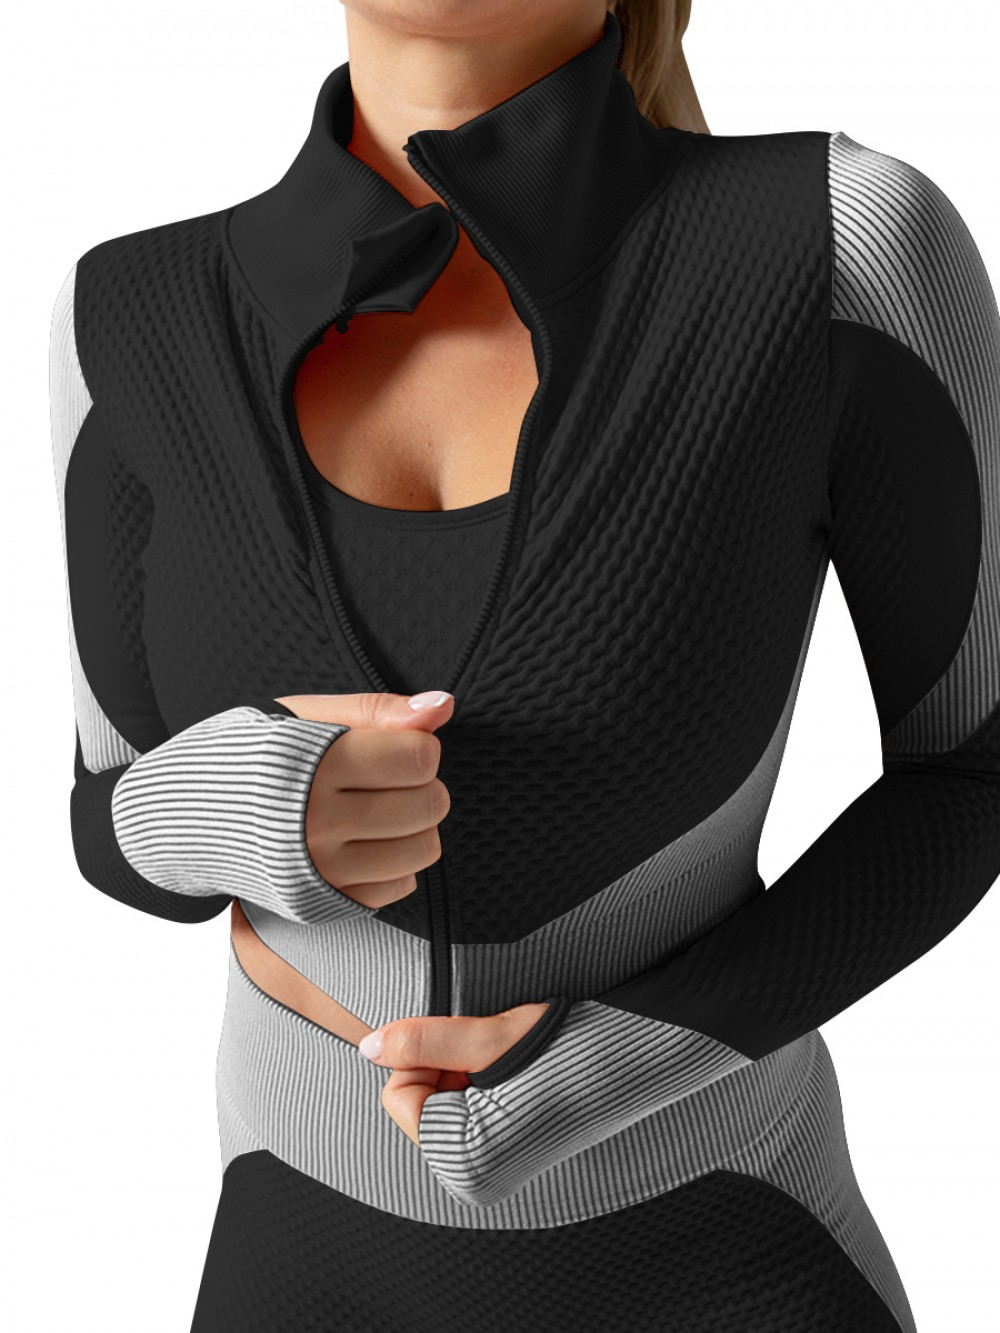 White Wide Waistband Contrast Color 3 Pcs Sweat Suit For Training